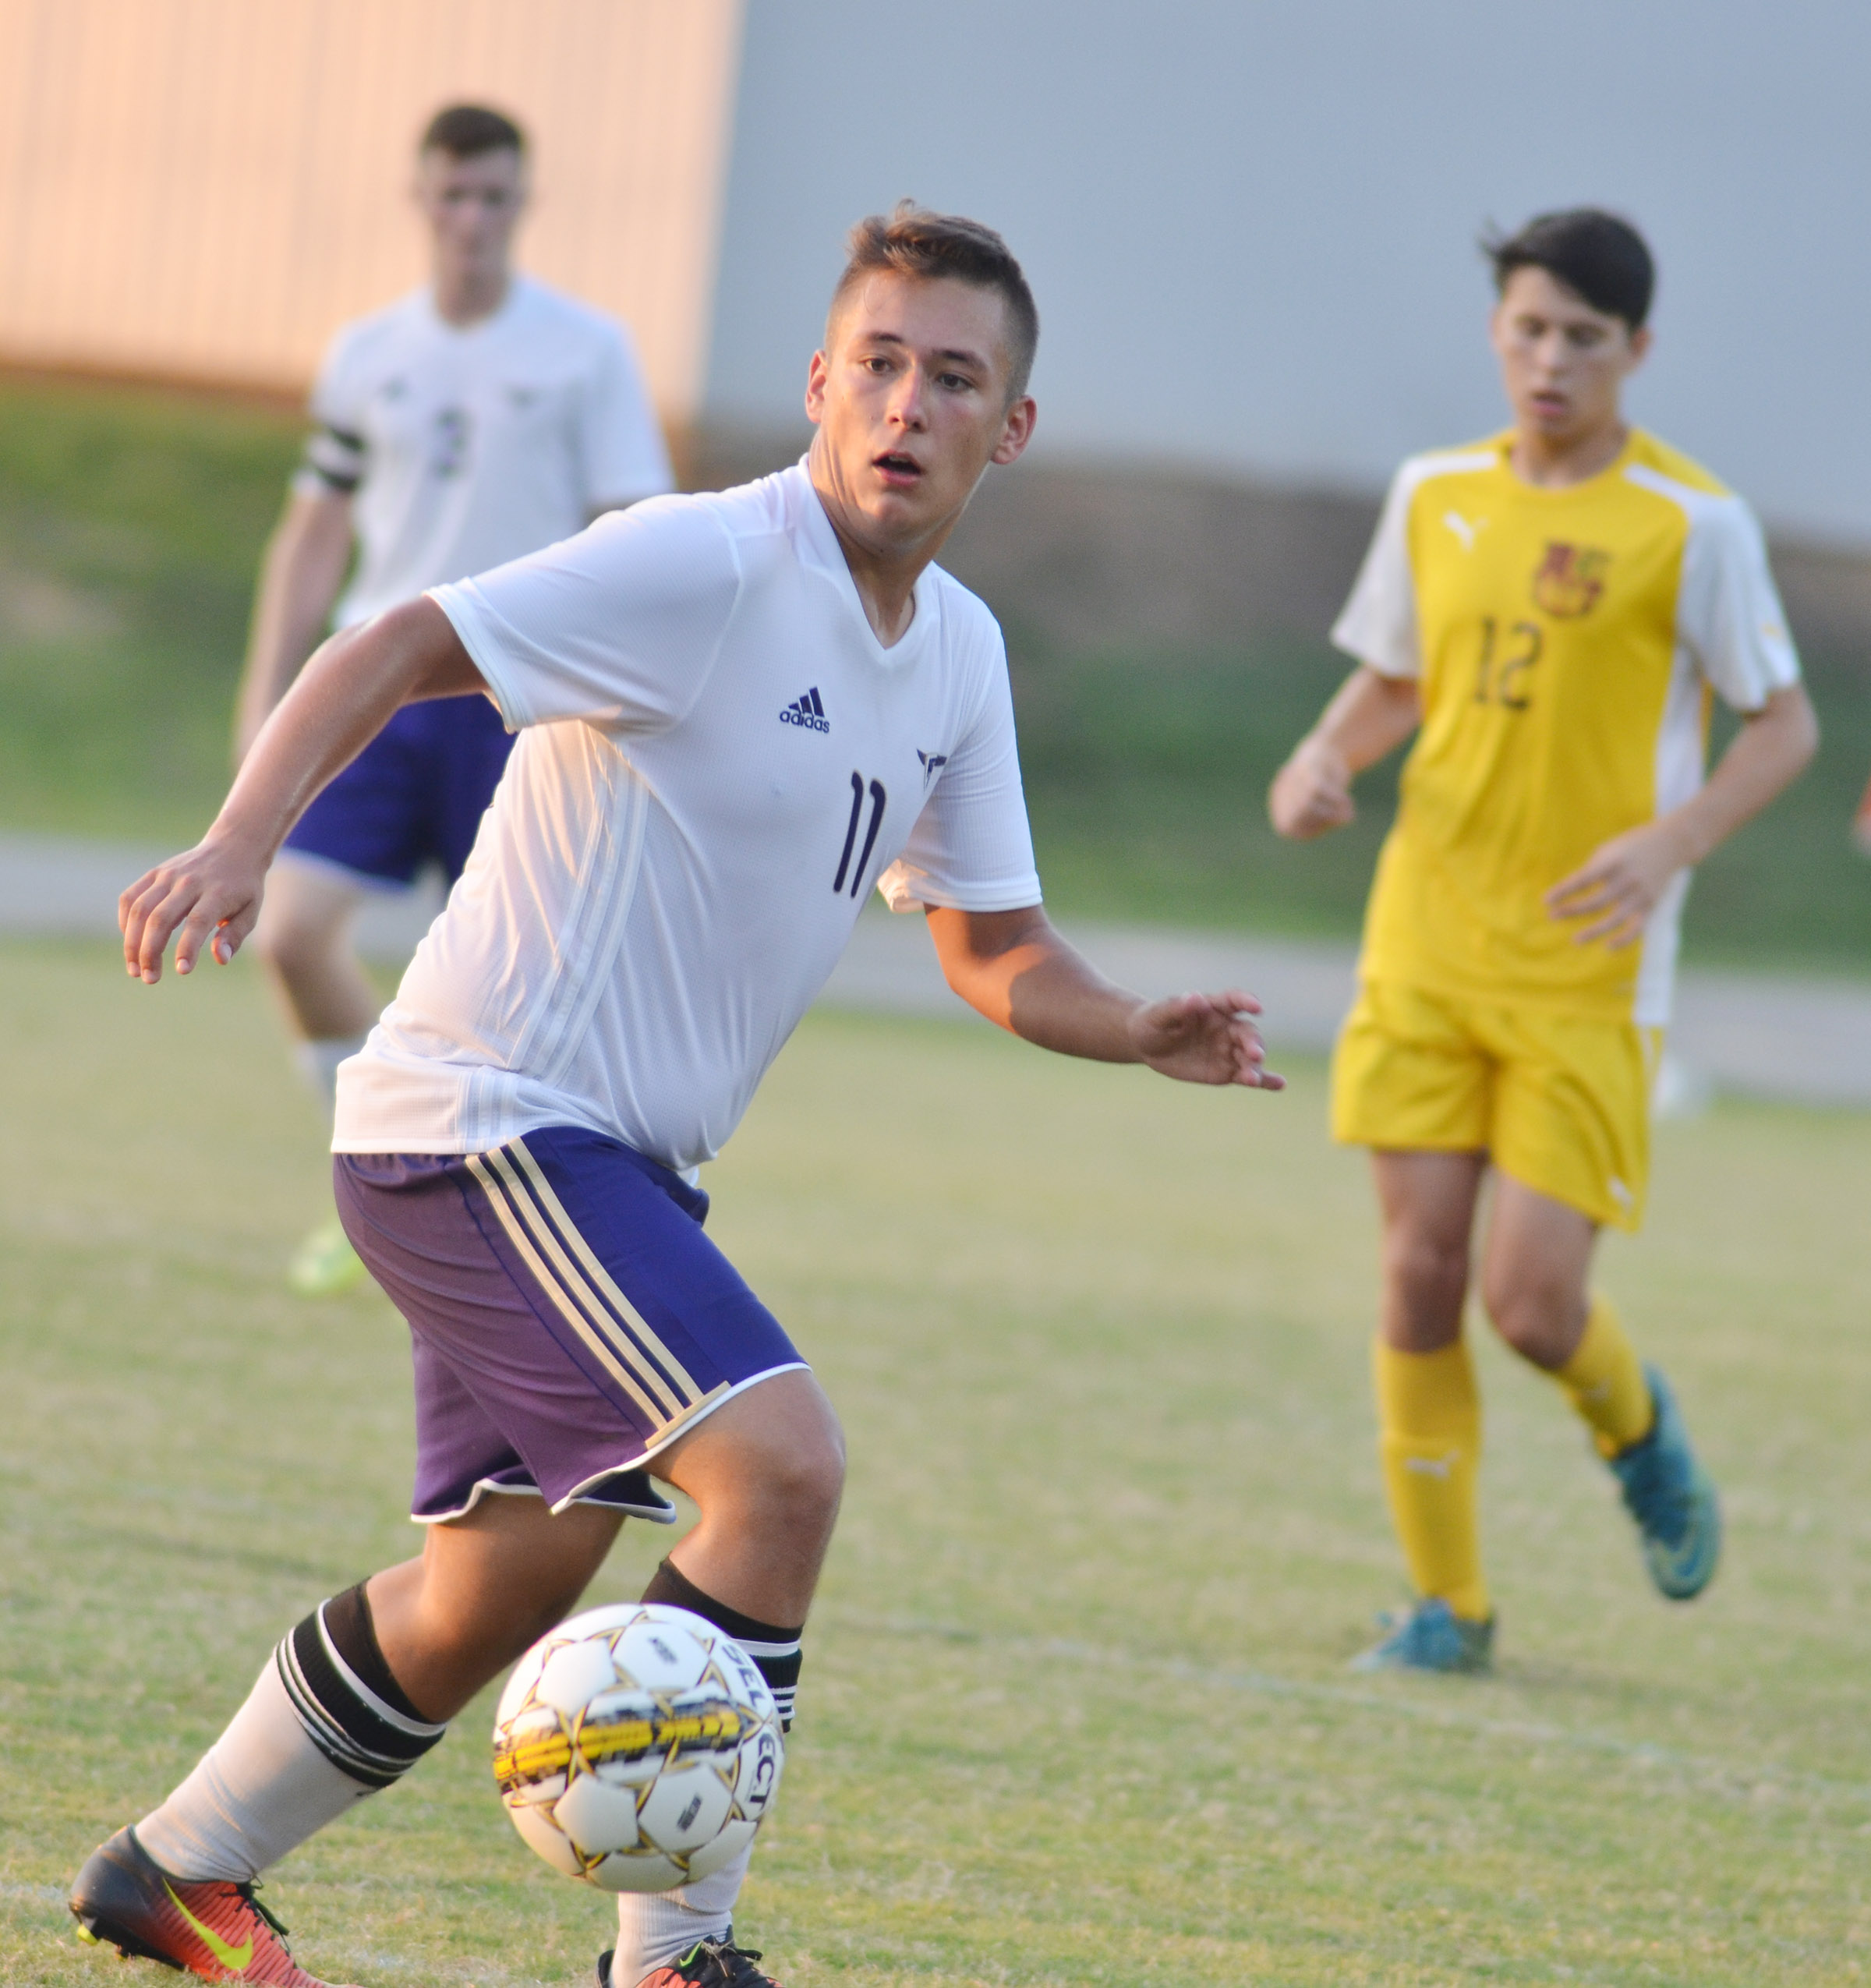 CHS senior Cody Davis runs to the ball.